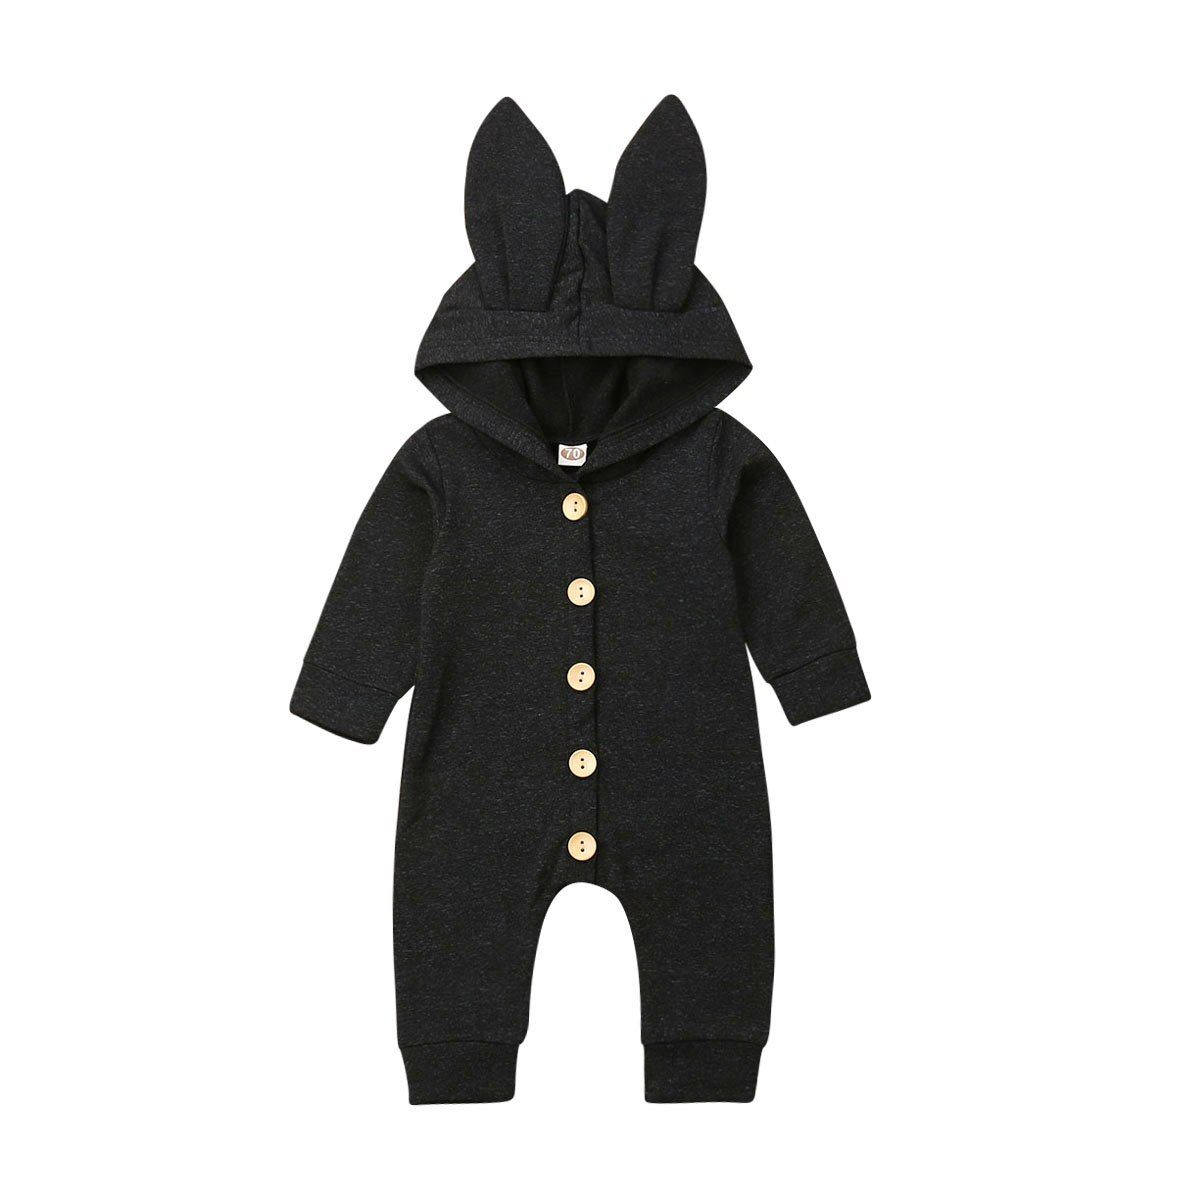 Newborn Baby Boys Girls Romper Jumpsuit Bodysuit Warm Clothes One-piece Outfits